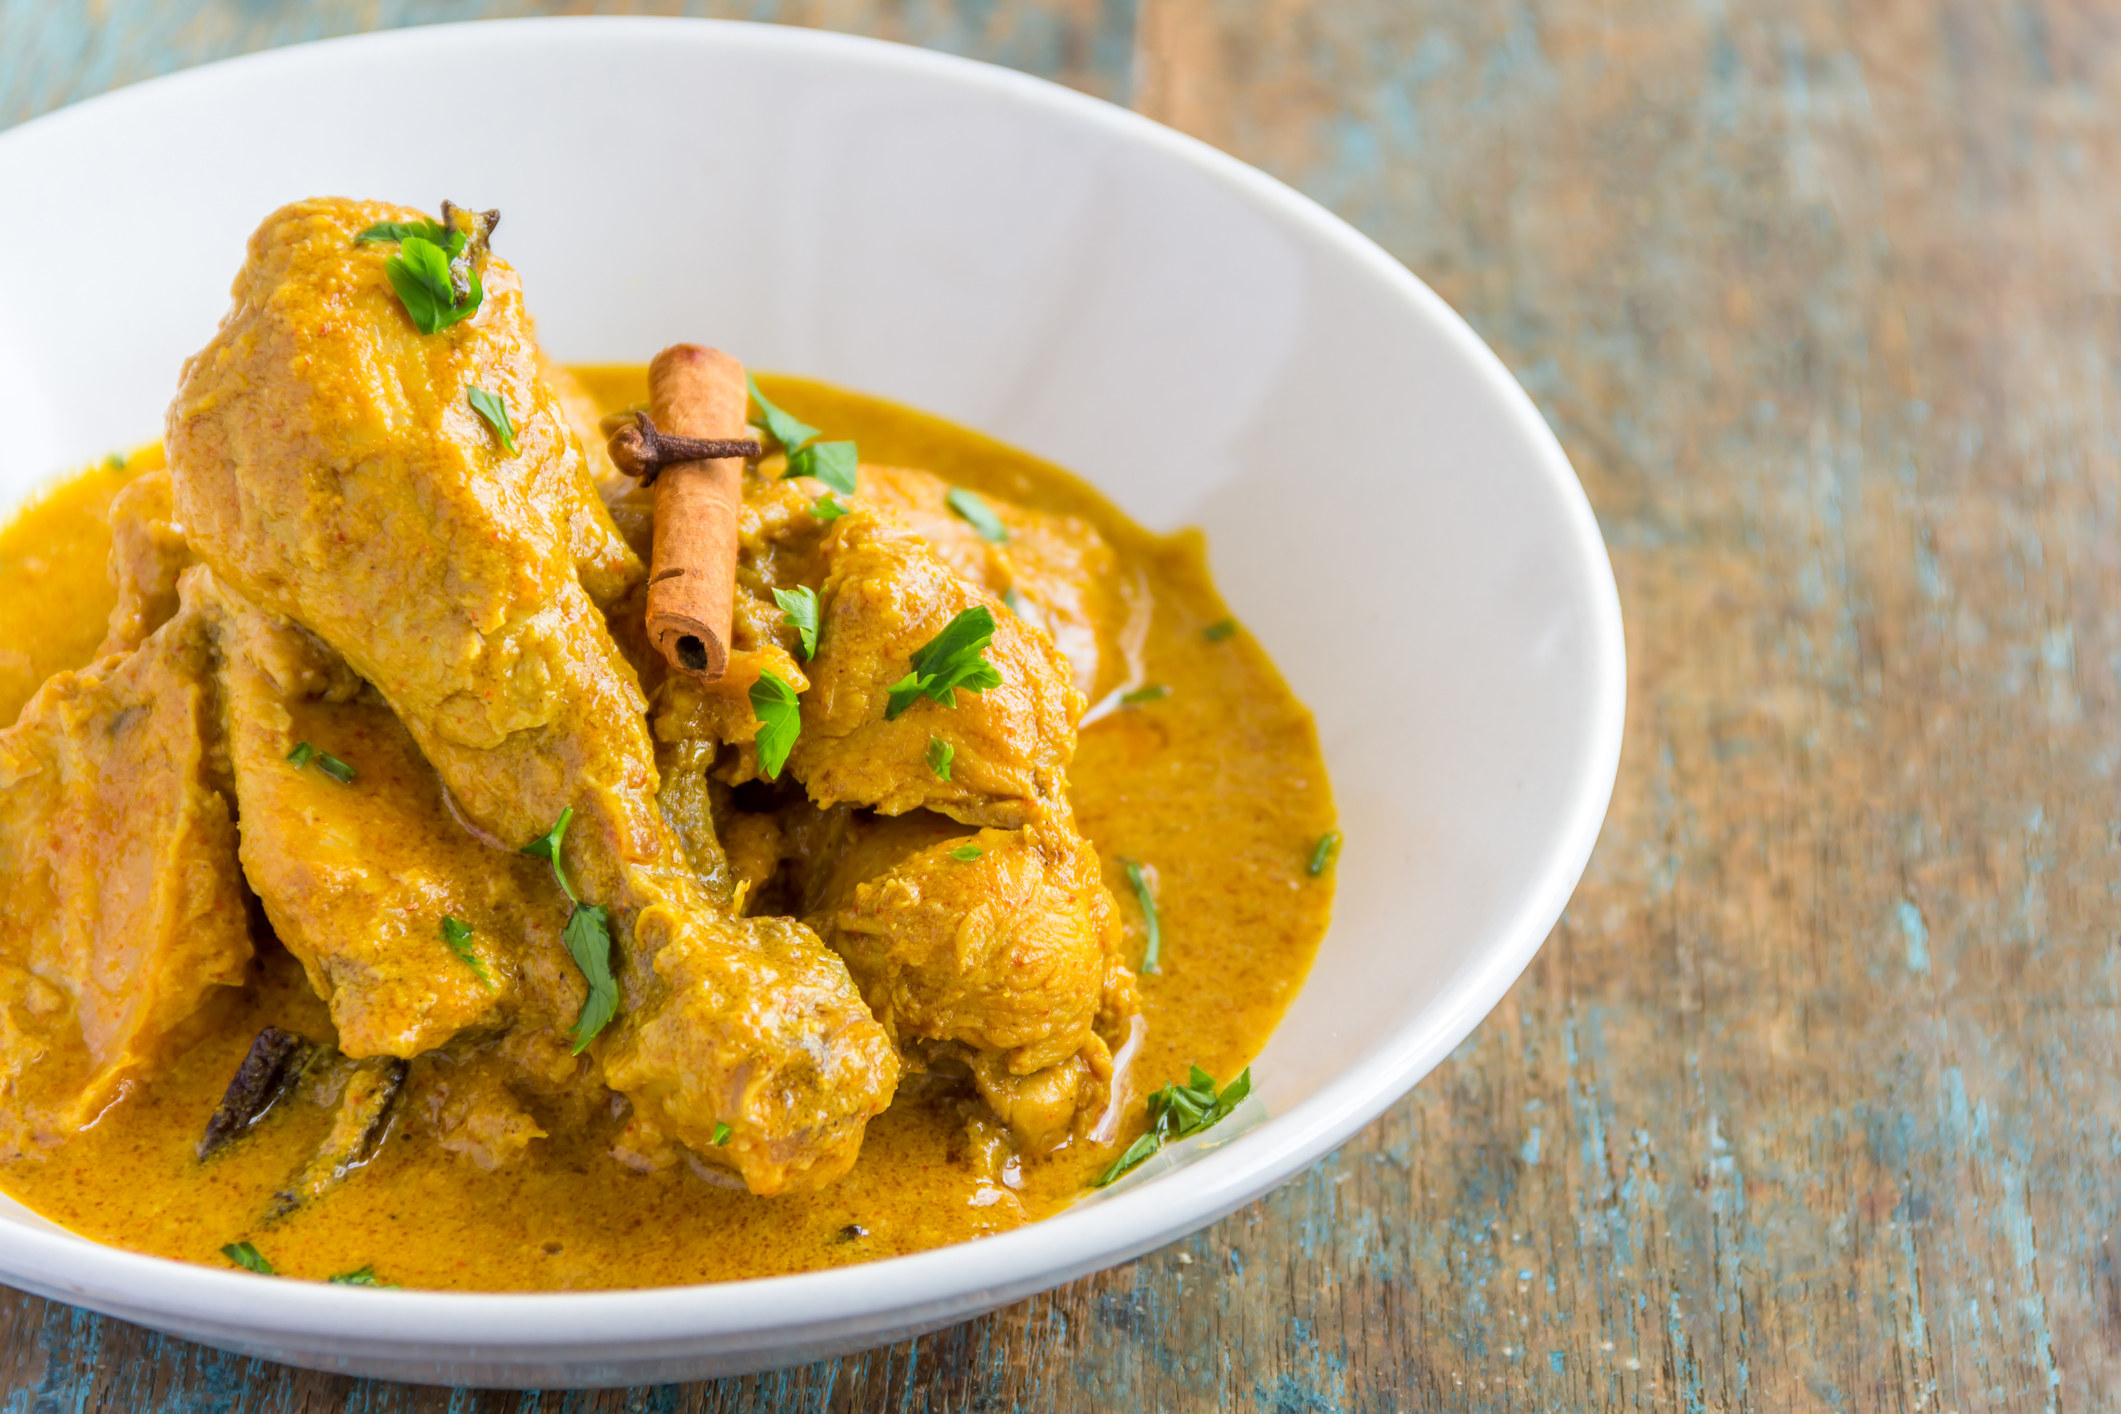 A bowl of chicken curry garnished with coriander and a stick of cinnamon